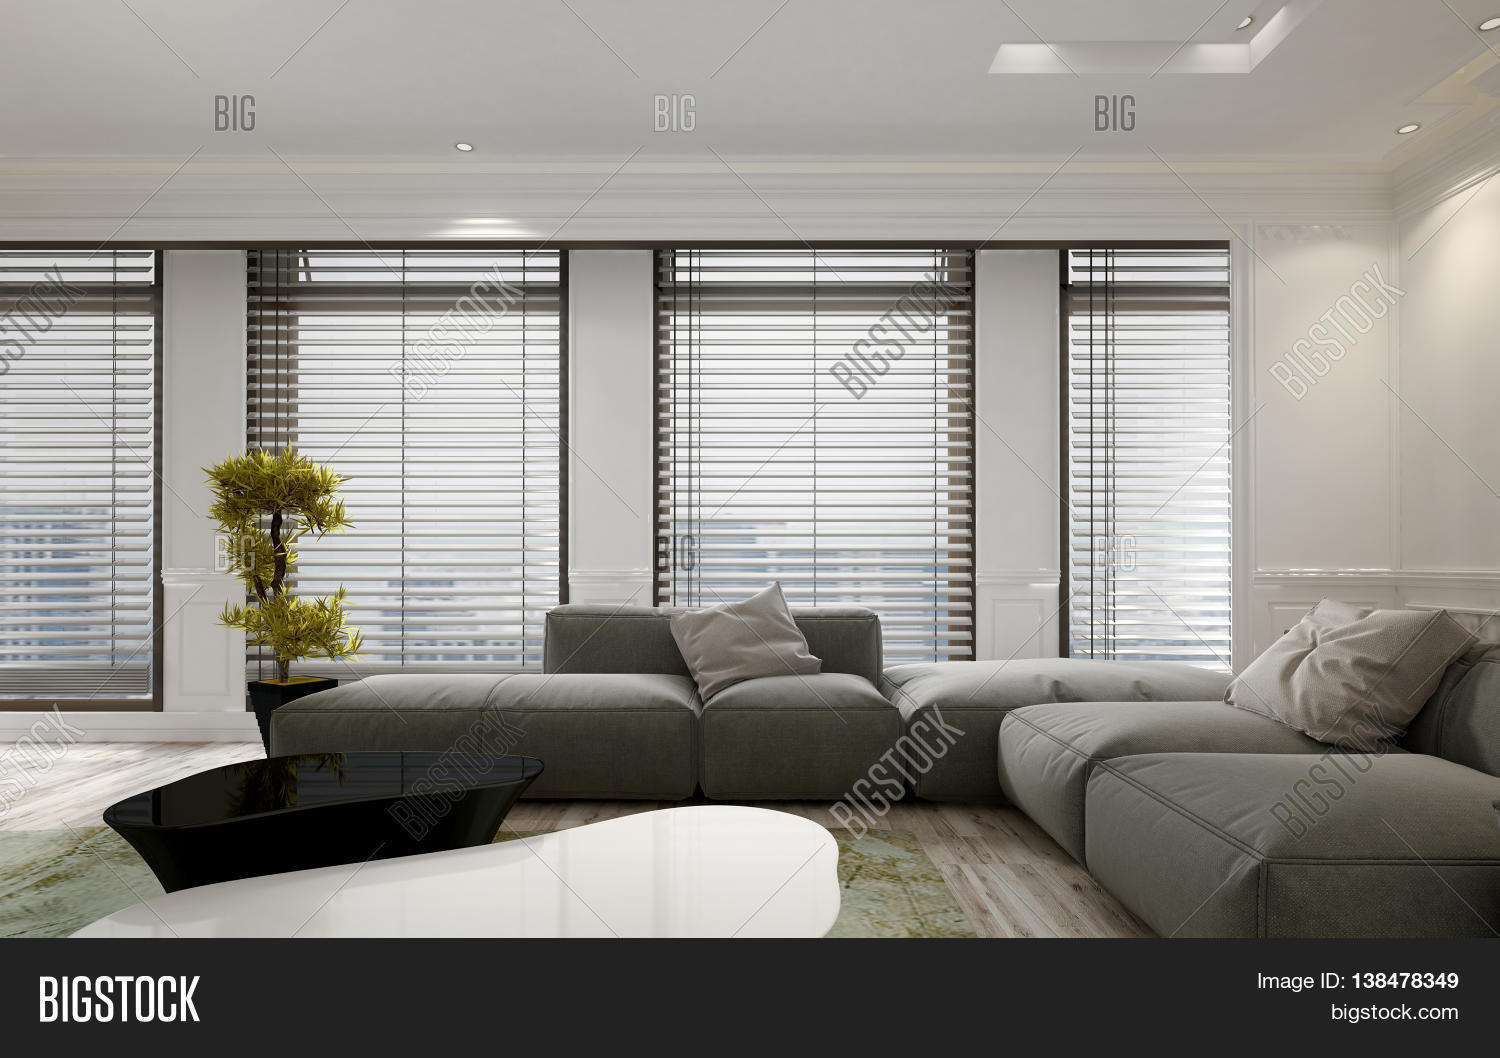 Luxury Apartment Living Room Interior With Large Floor To Ceiling Window Blinds And Soft Gray Modular